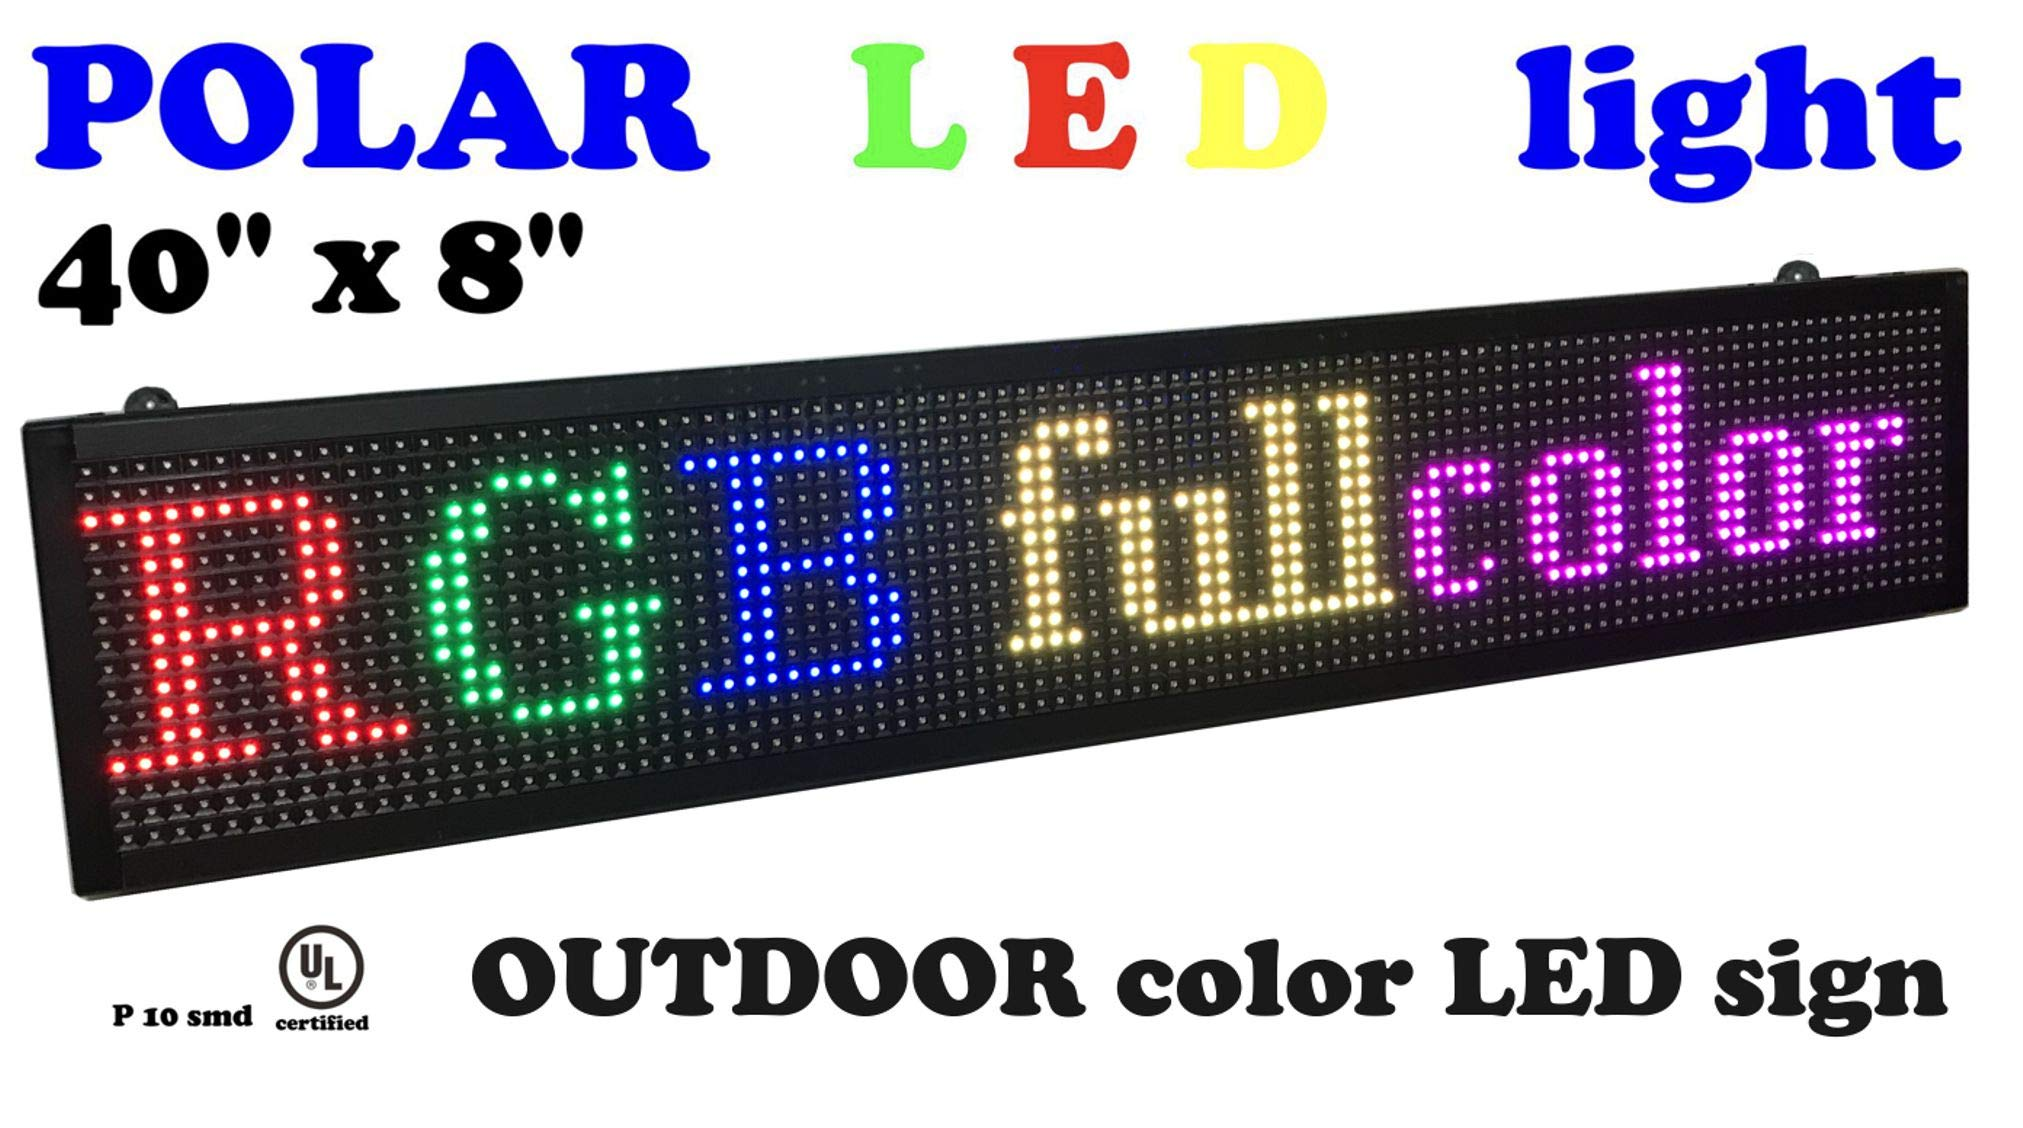 Outdoor LED Sign with SMD Technology RGB Color Size 40'' x 8'' Resolution P10 Perfect Solution for Advertising